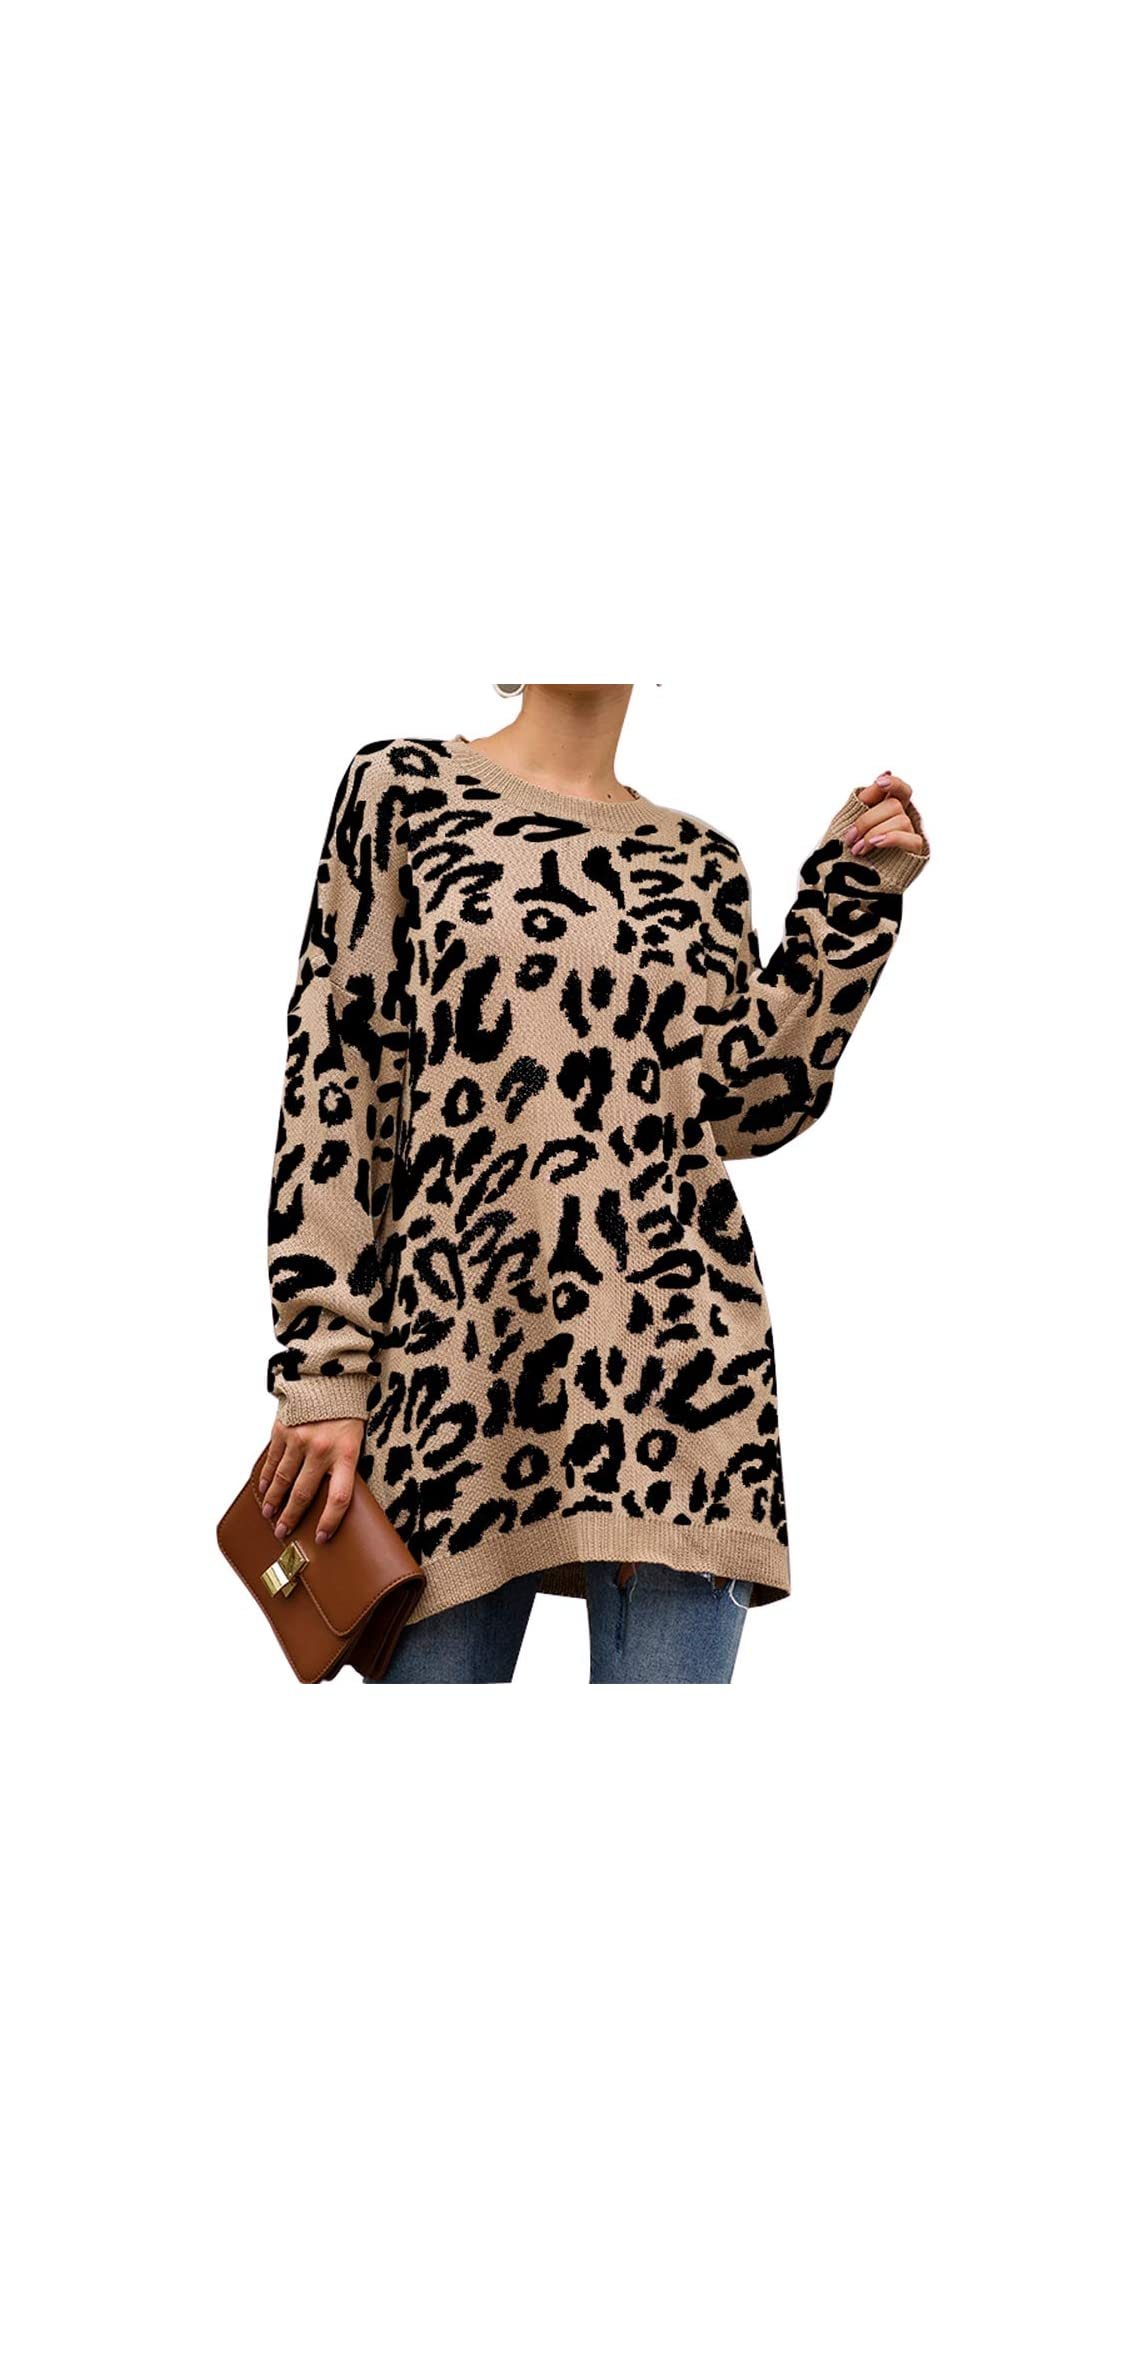 Womens Casual Leopard Print Long Sleeve Crew Neck